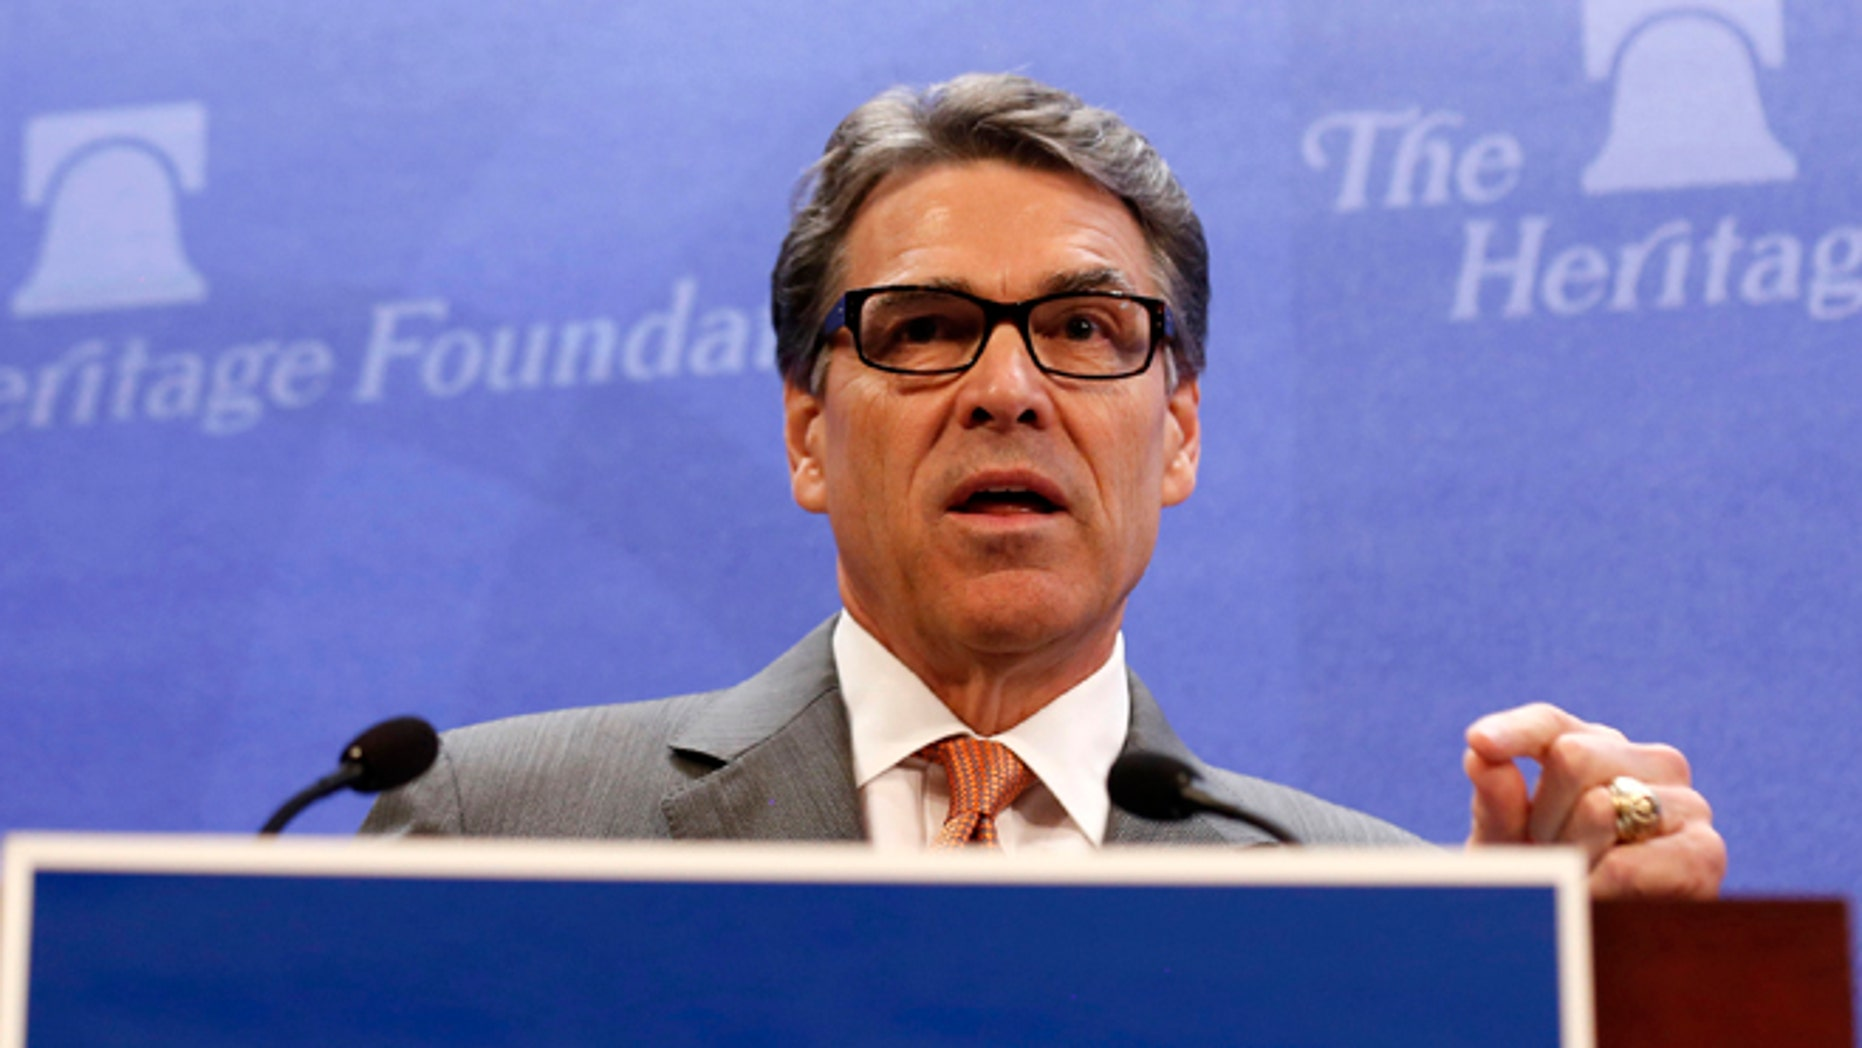 Aug. 21, 2014: Texas Gov. Rick Perry speaks about border security at the Heritage Foundation in Washington.